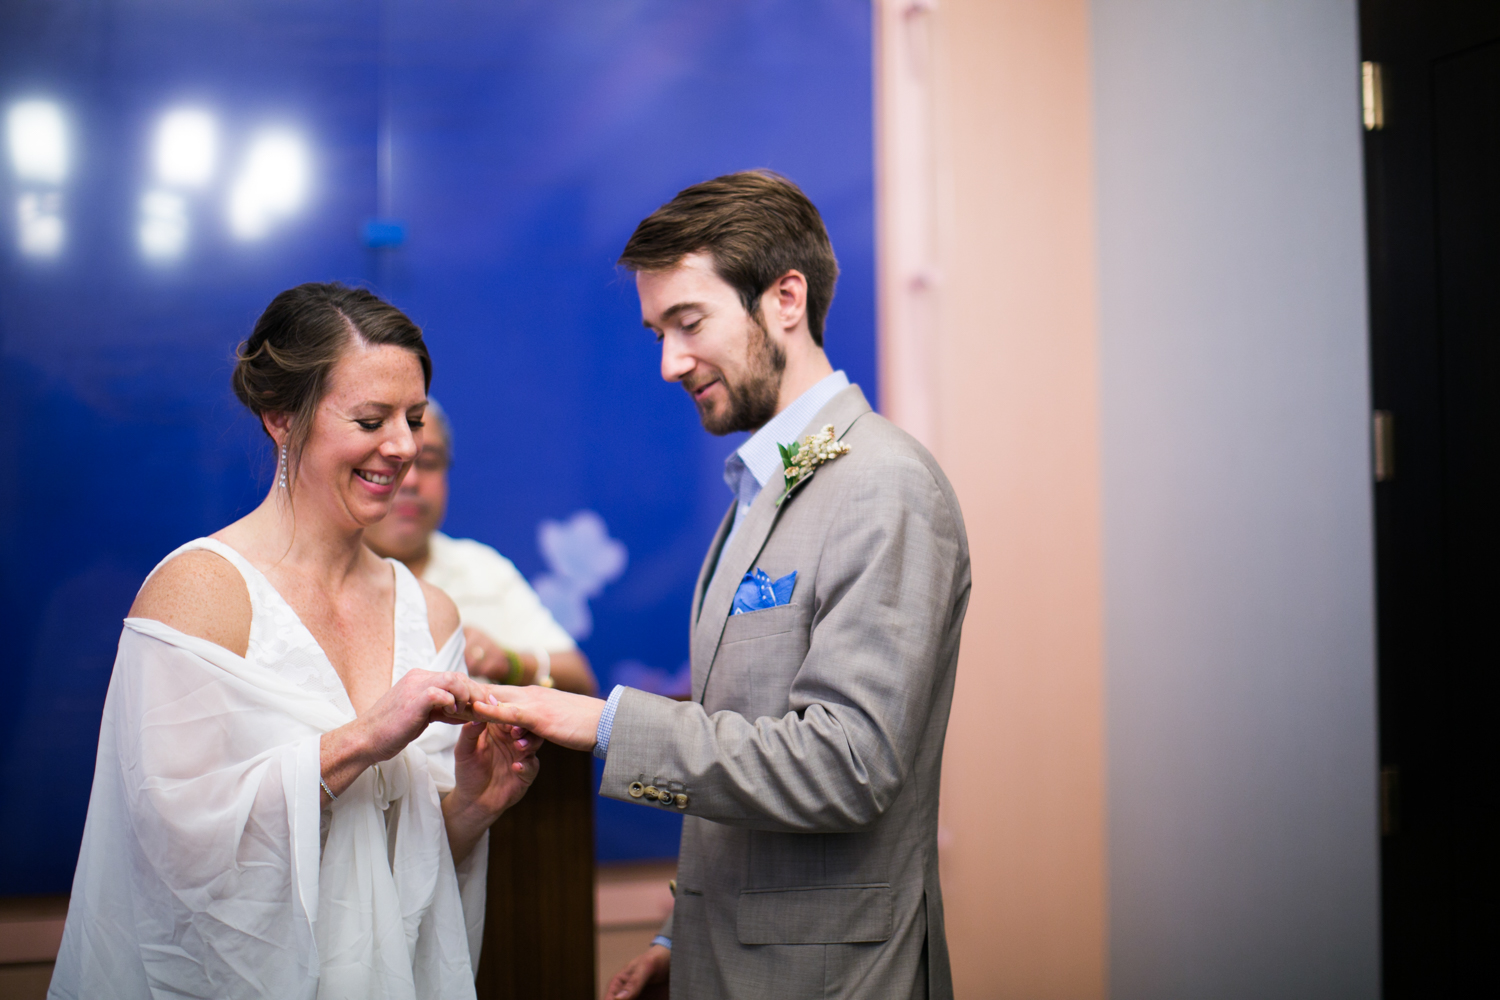 Elopement ceremony in NYC